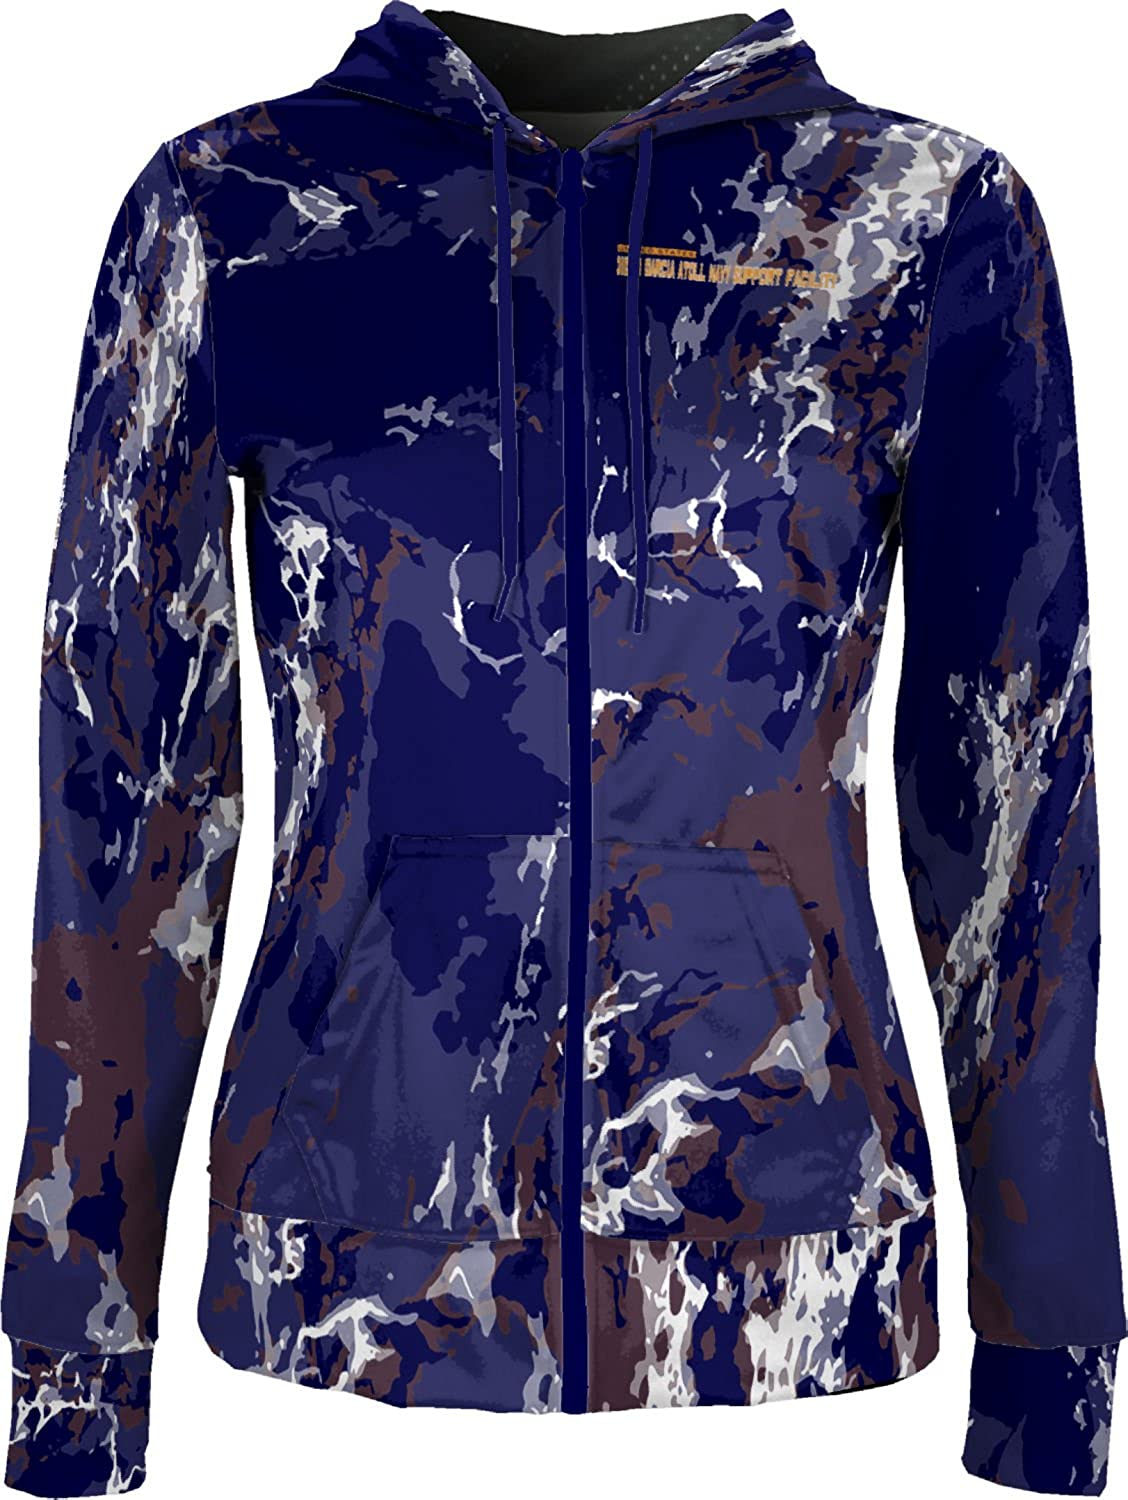 Women's Diego Garcia Atoll Navy Support Facility Military Marble Fullzip Hoodie